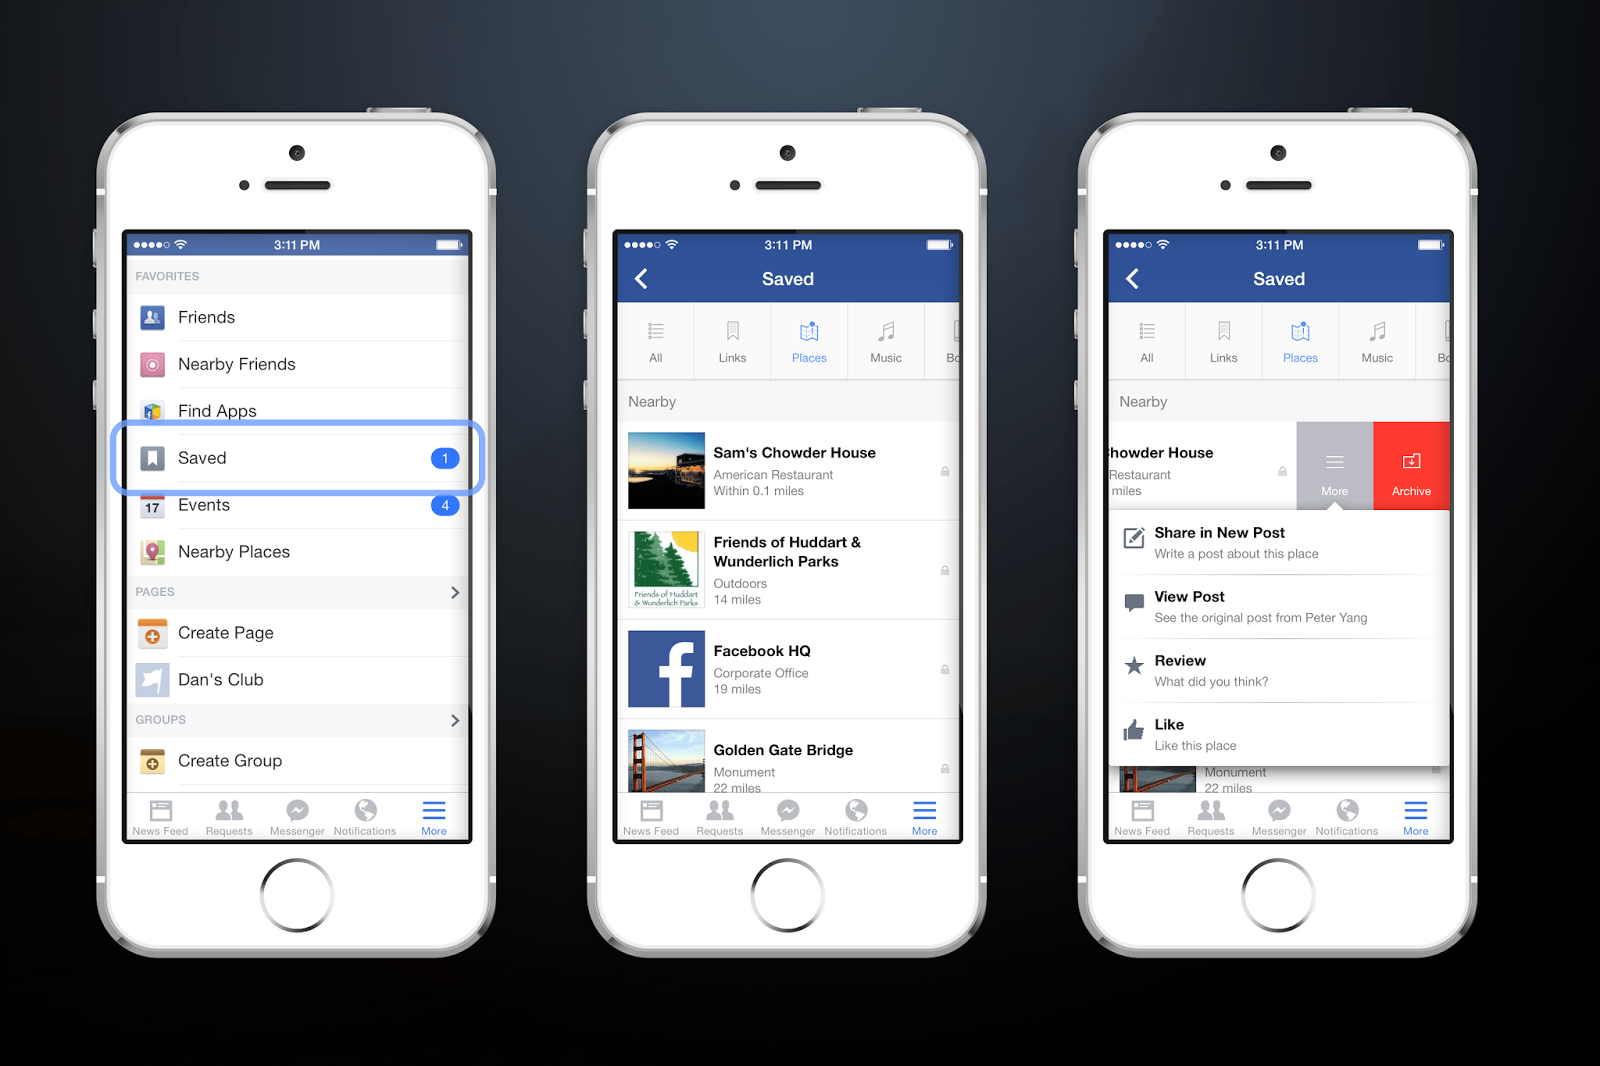 Facebook save places,links,pictures,videos and posts